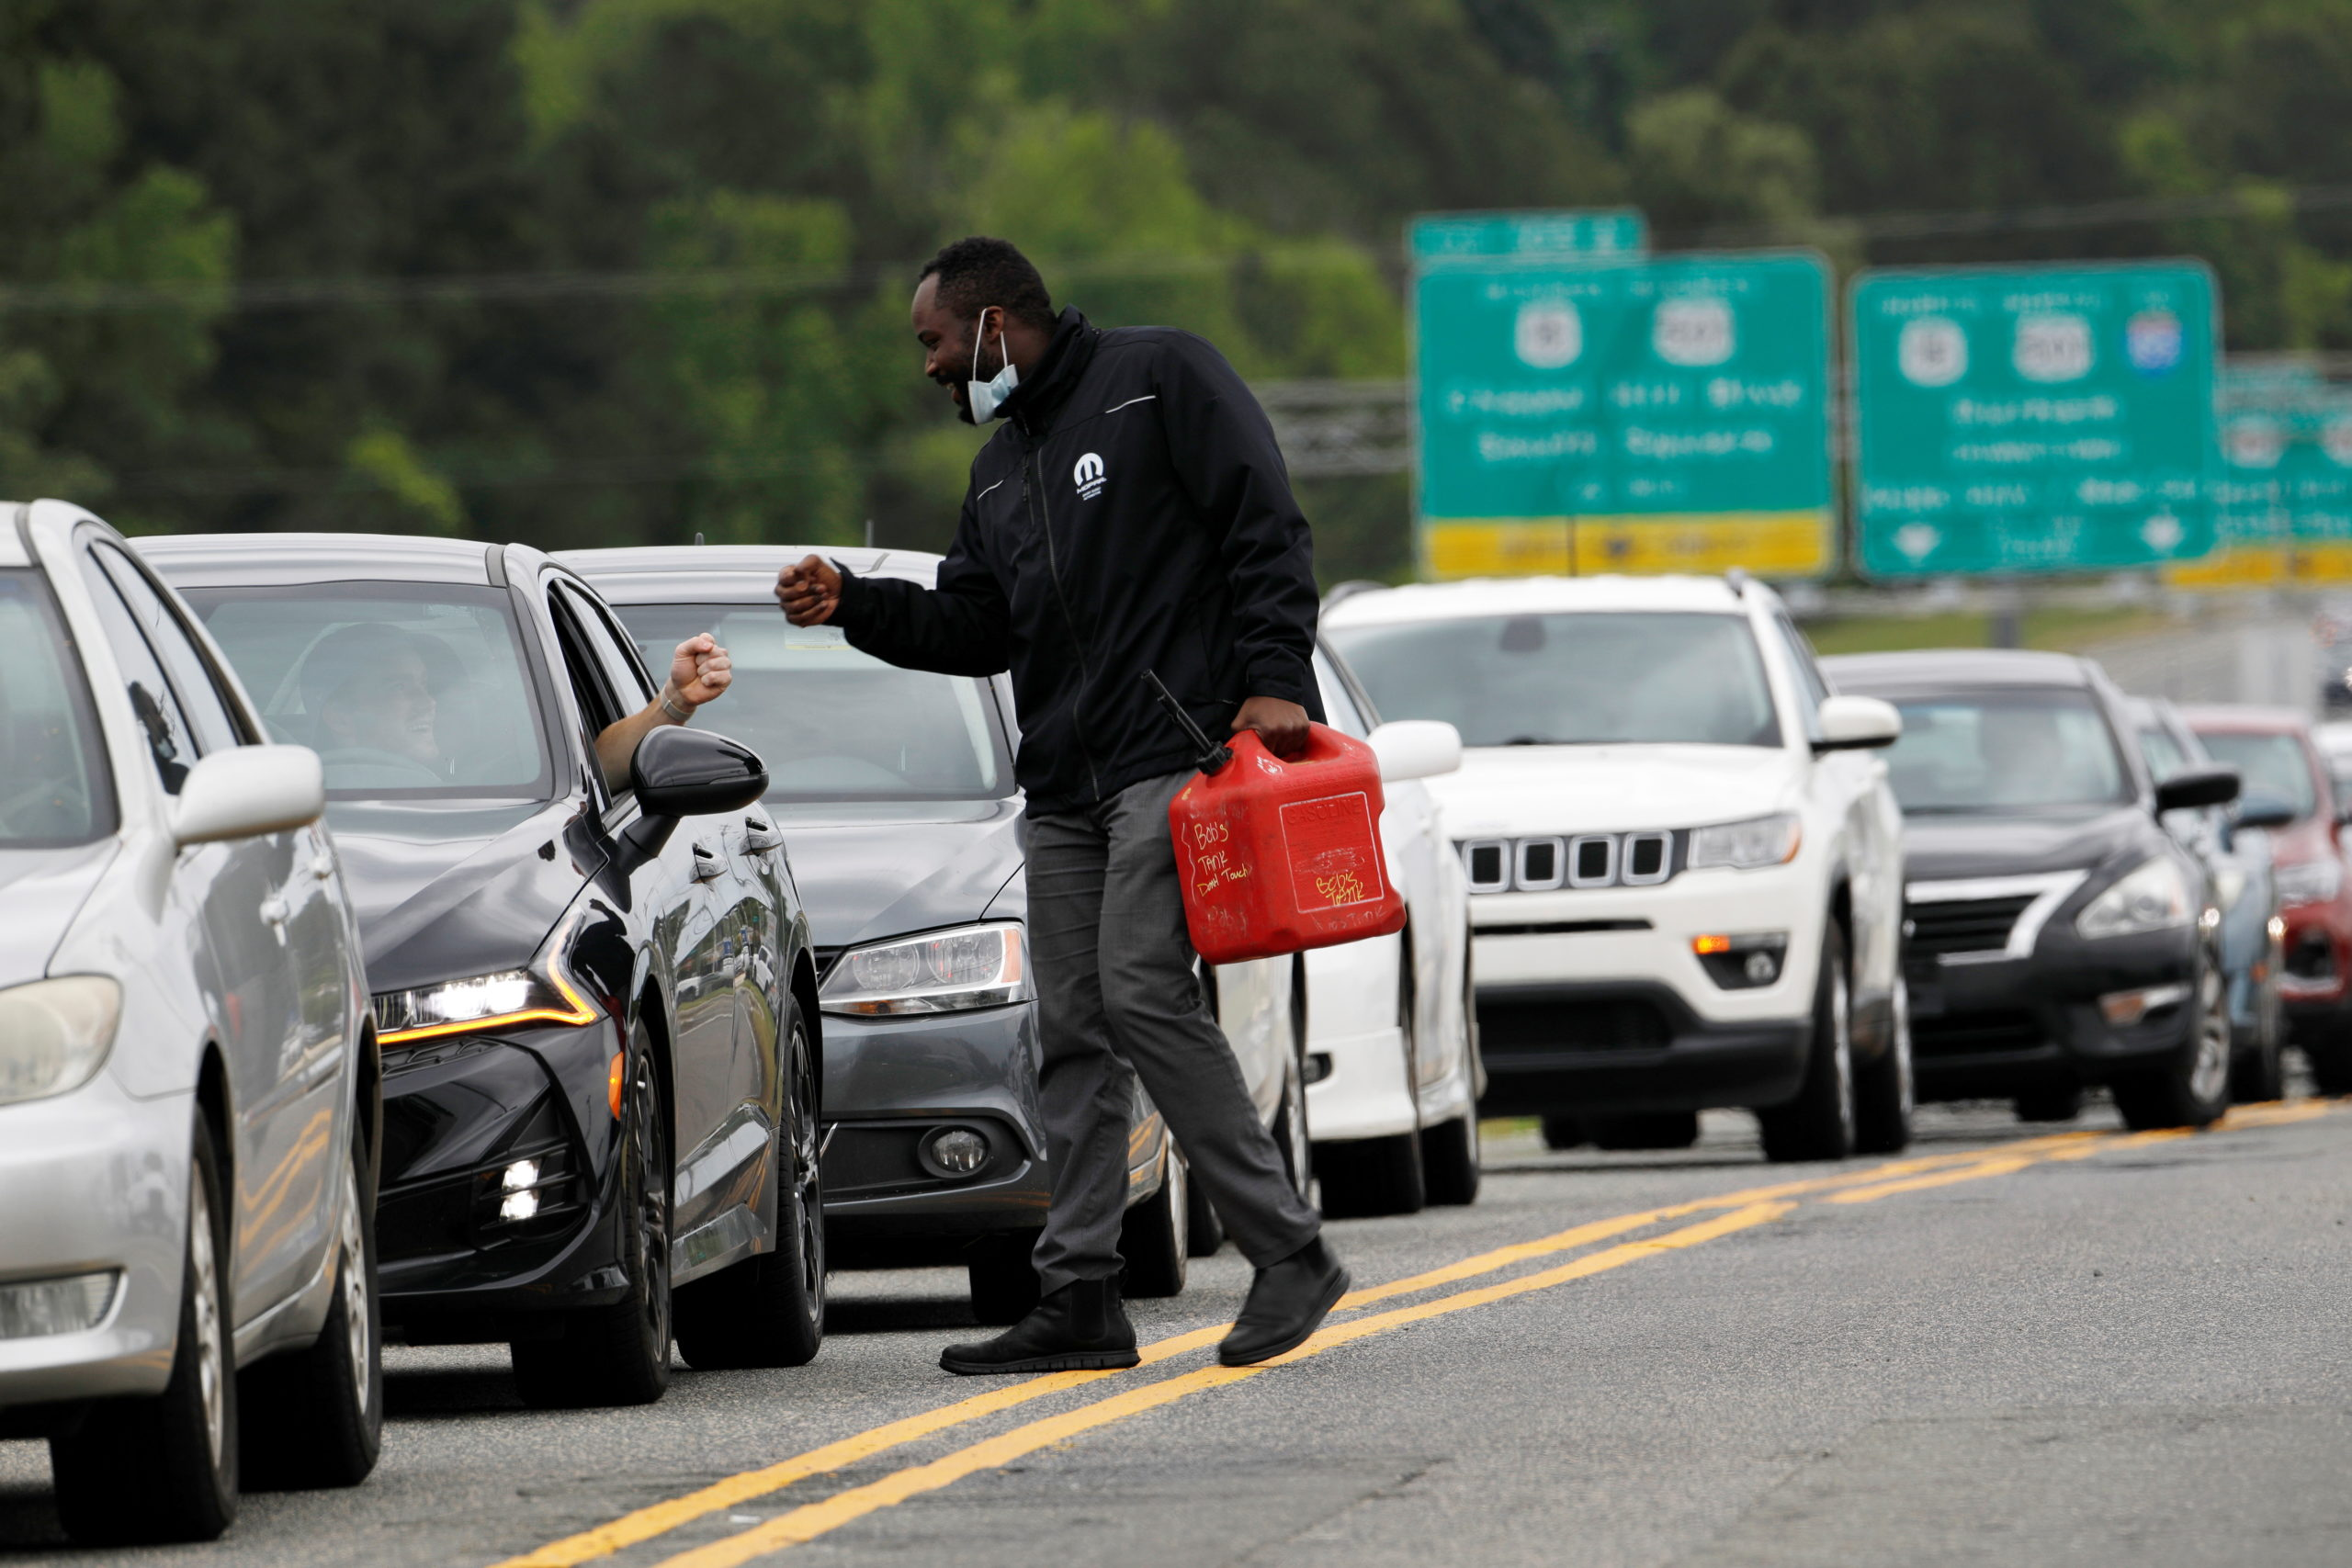 A friend carrying a gas container is greeted by a motorist waiting in a lengthy line to enter a gasoline station during a surge in the demand for fuel following the cyberattack that crippled the Colonial Pipeline, in Durham, North Carolina, U.S. May 12, 2021. (REUTERS/Jonathan Drake)